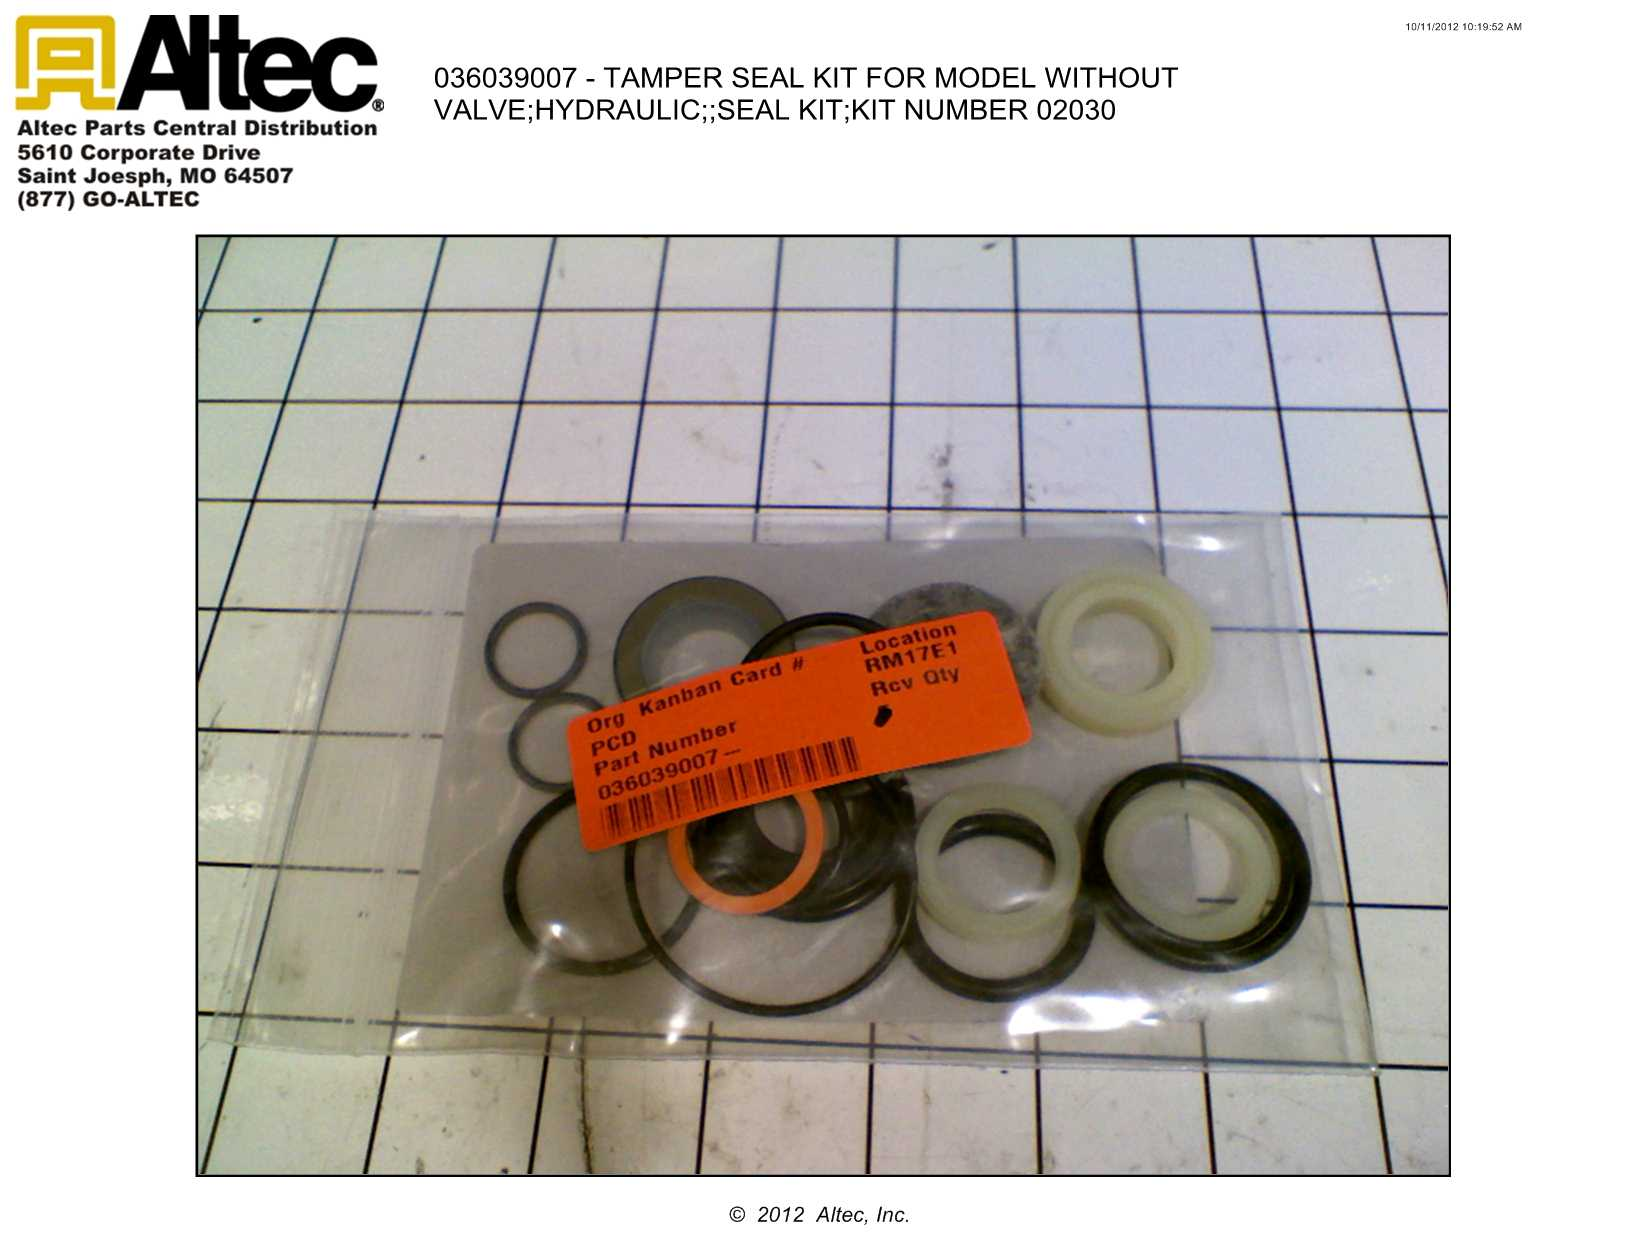 Stanley Hydraulic Tools 02030 Seal Kit for Stanley Hydraulic